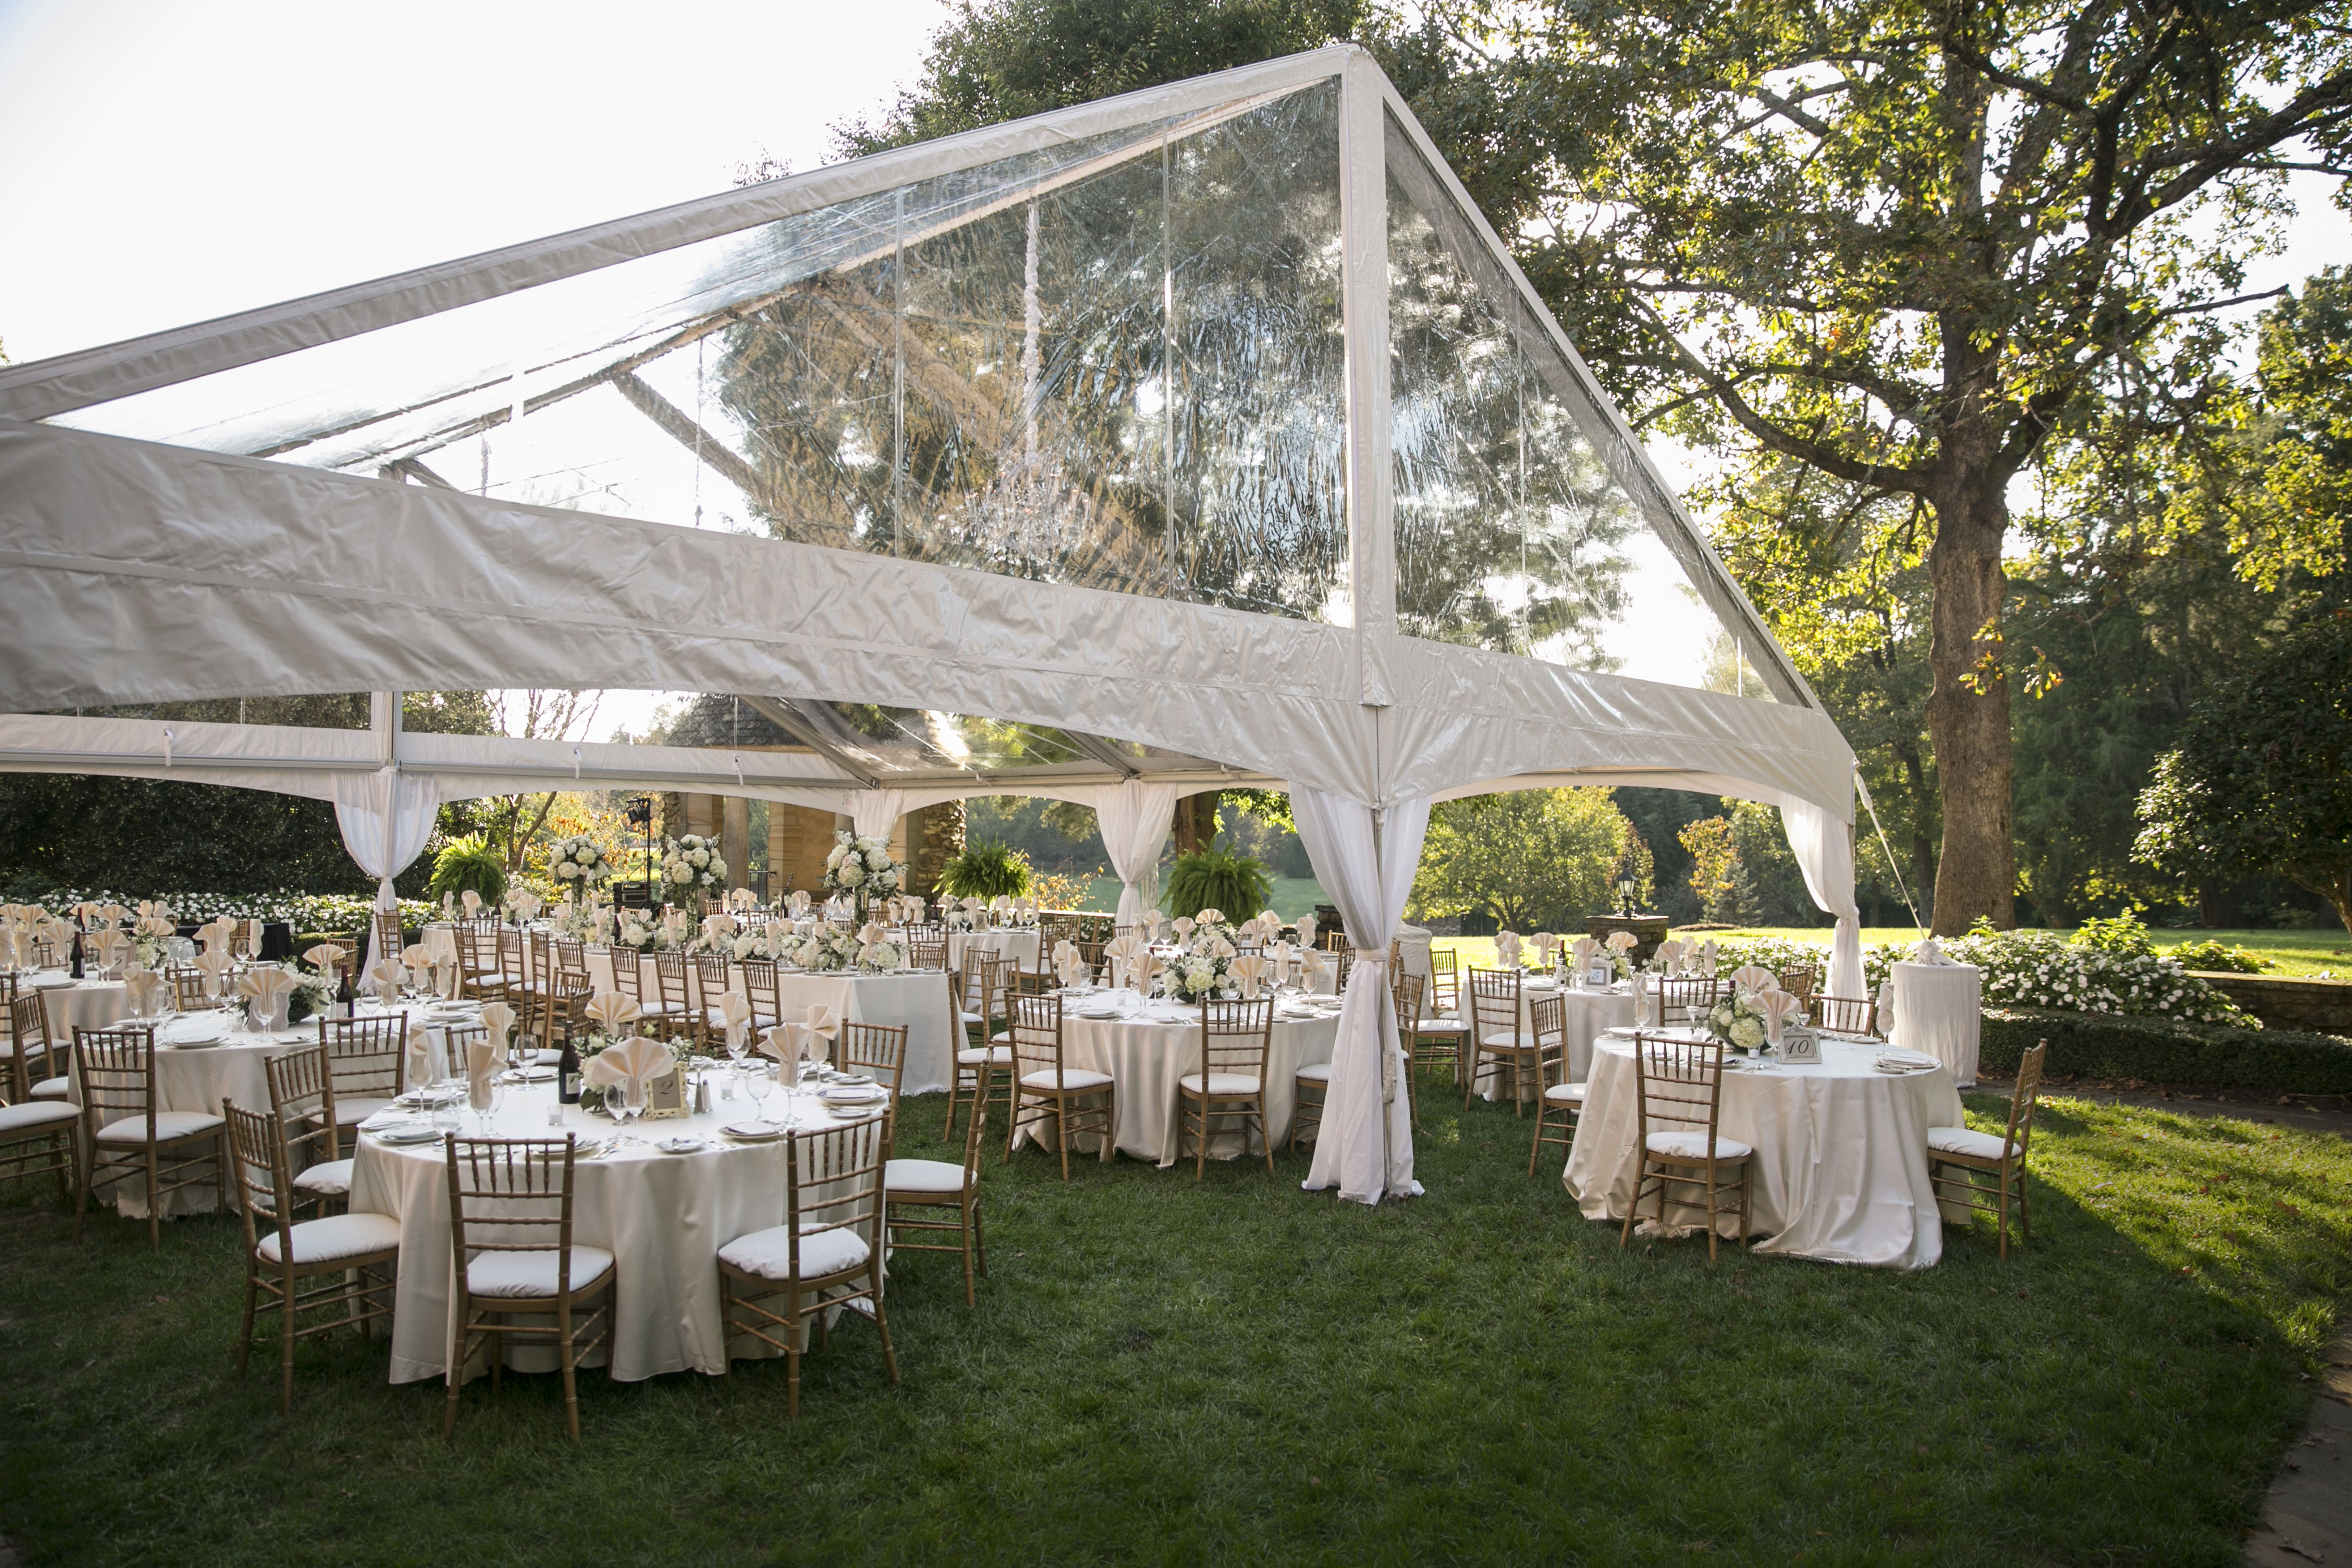 for outdoor reception #chandelier #cleartent #canopytent #tiffanychairs  #tablecloth #rental | Tent rentals, Outdoor wedding, Event rental